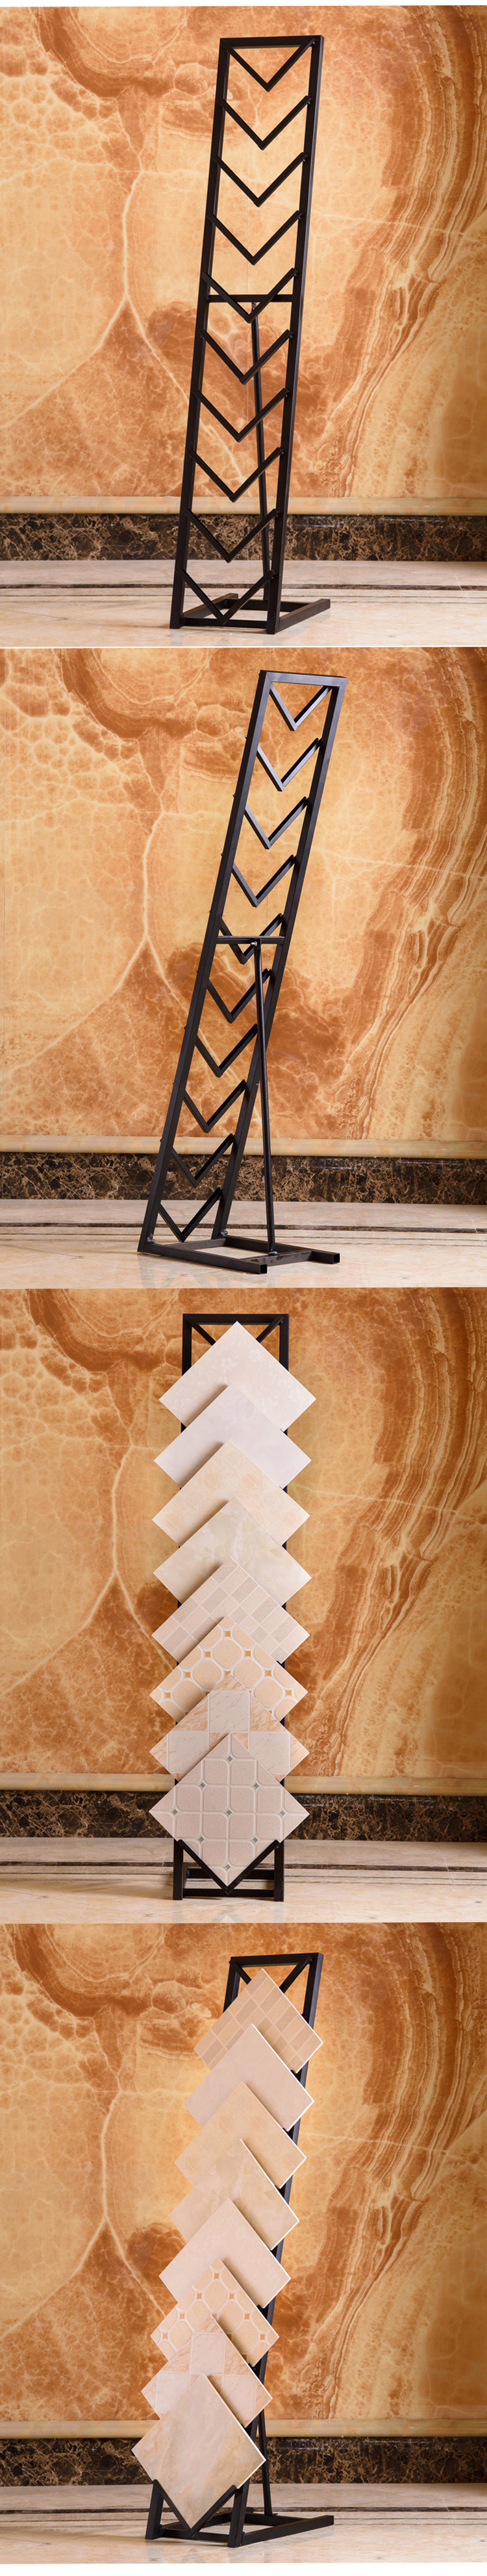 Metal Tiles Display Stand